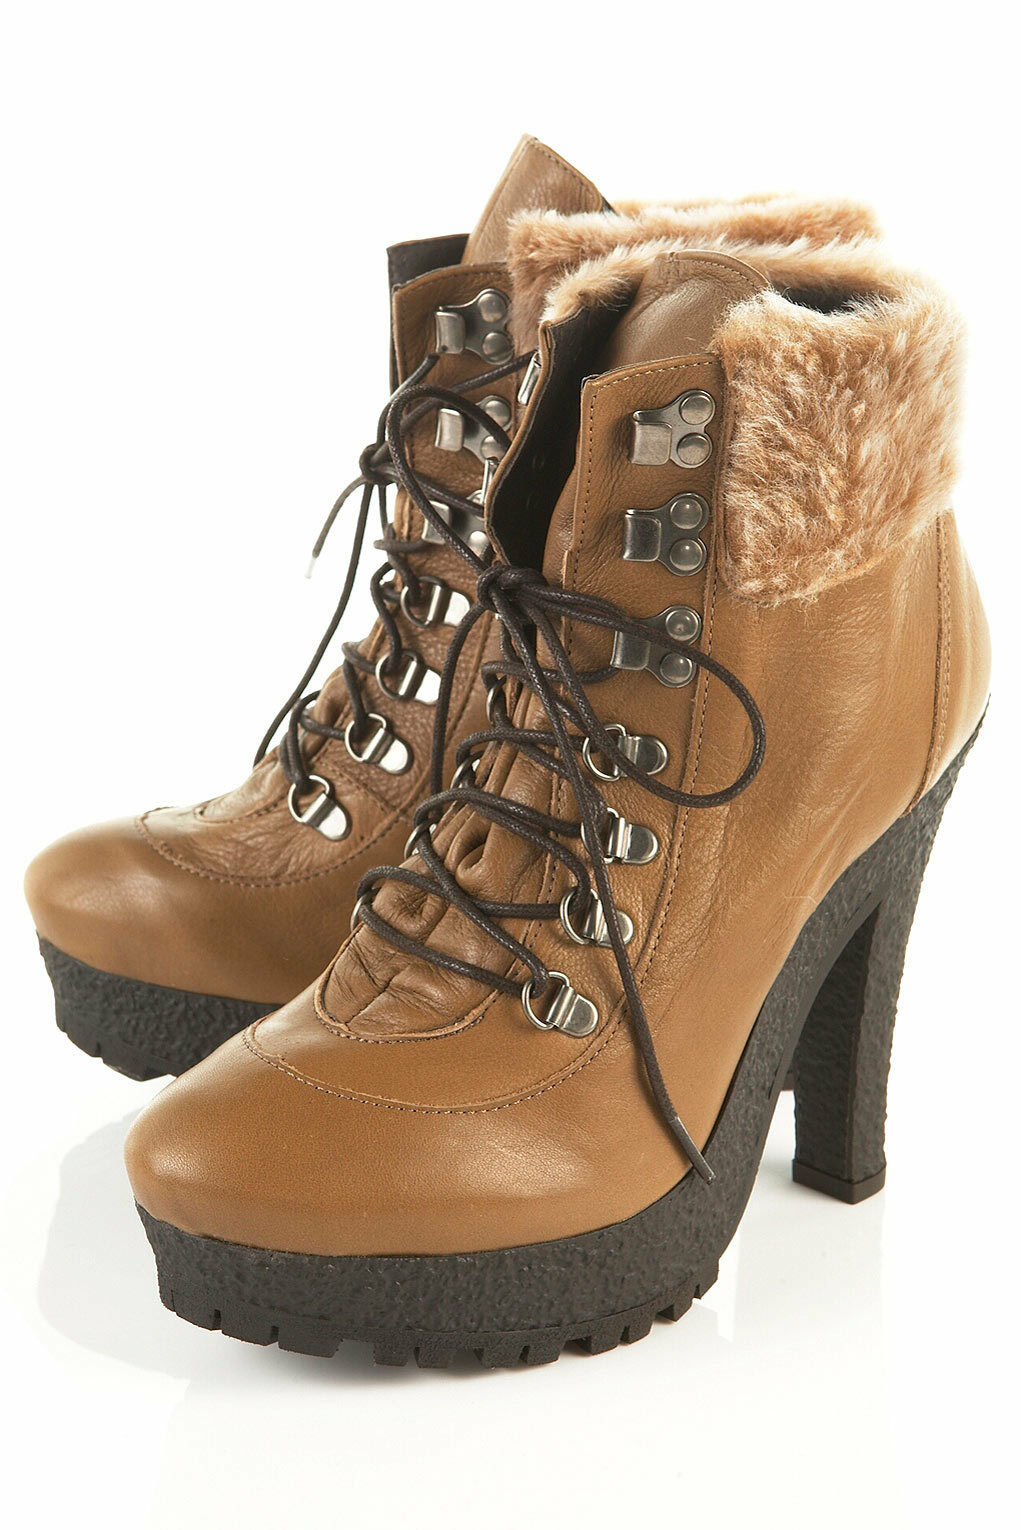 New TOPSHOP ARELLA2 heeled hiker boots in Camel